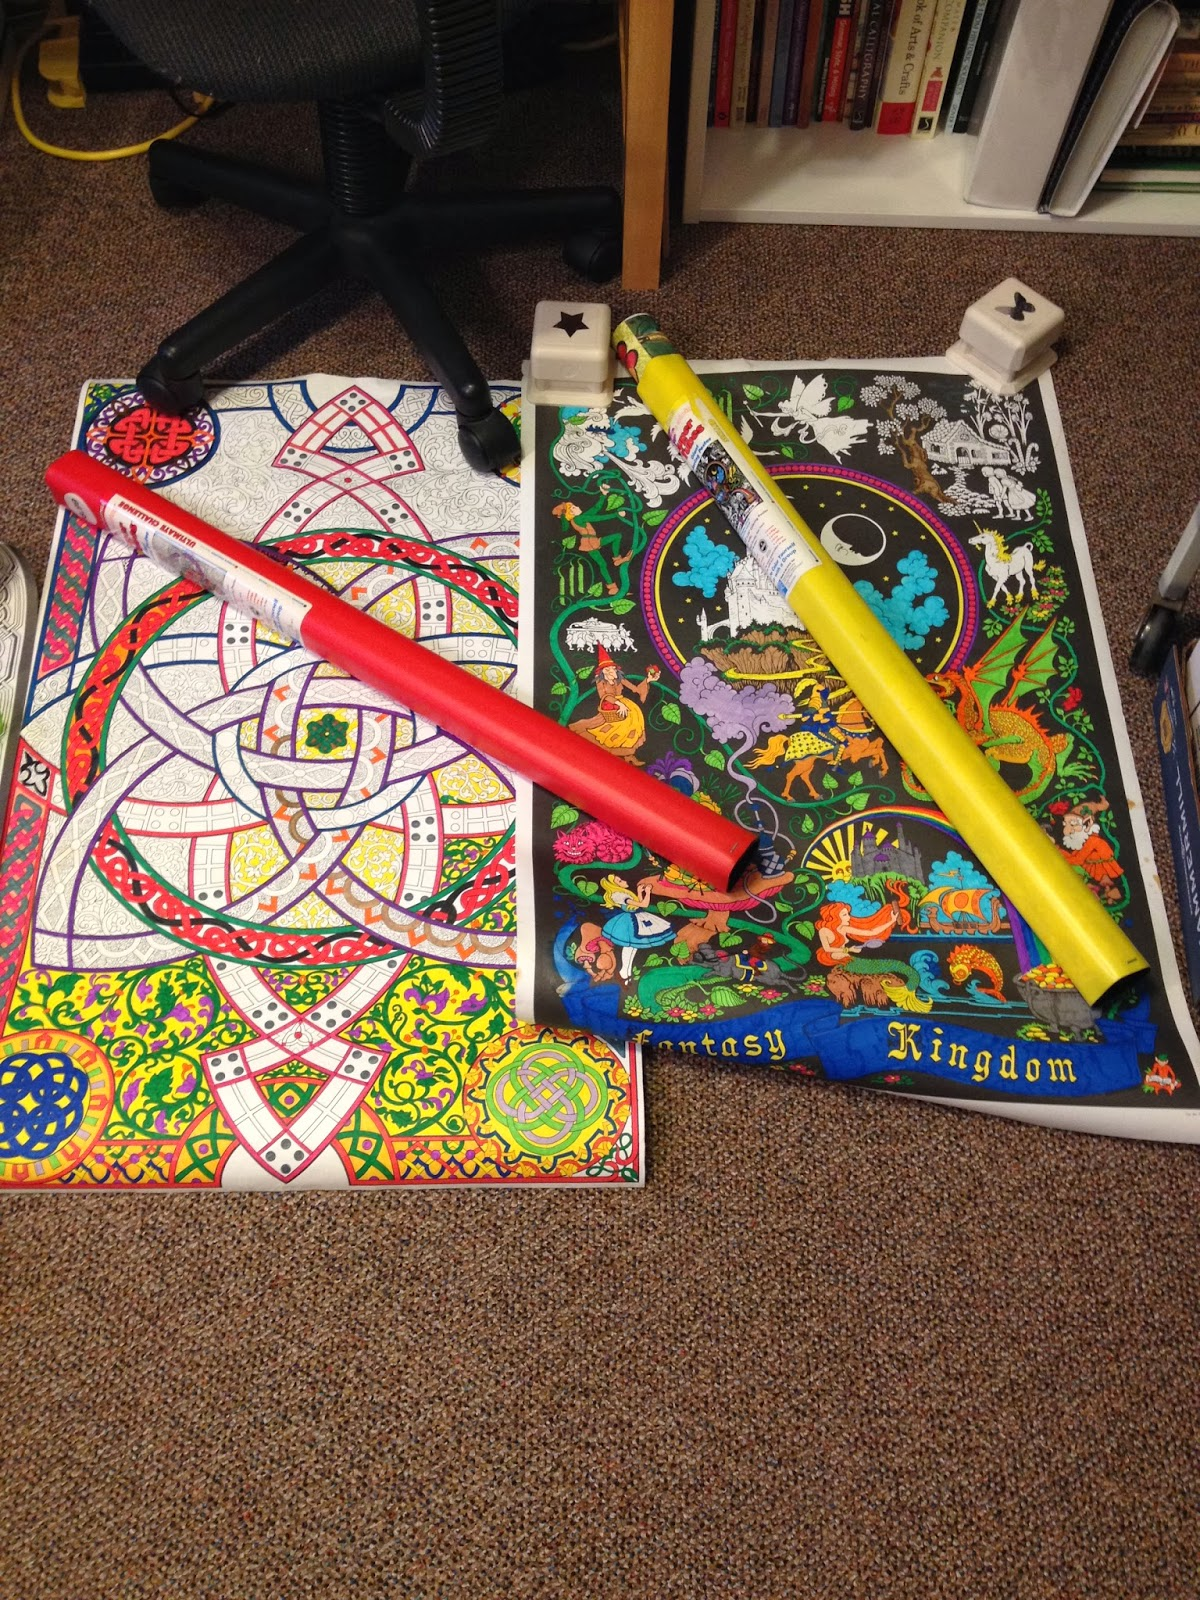 It is an image of Simplicity giant coloring posters in tubes